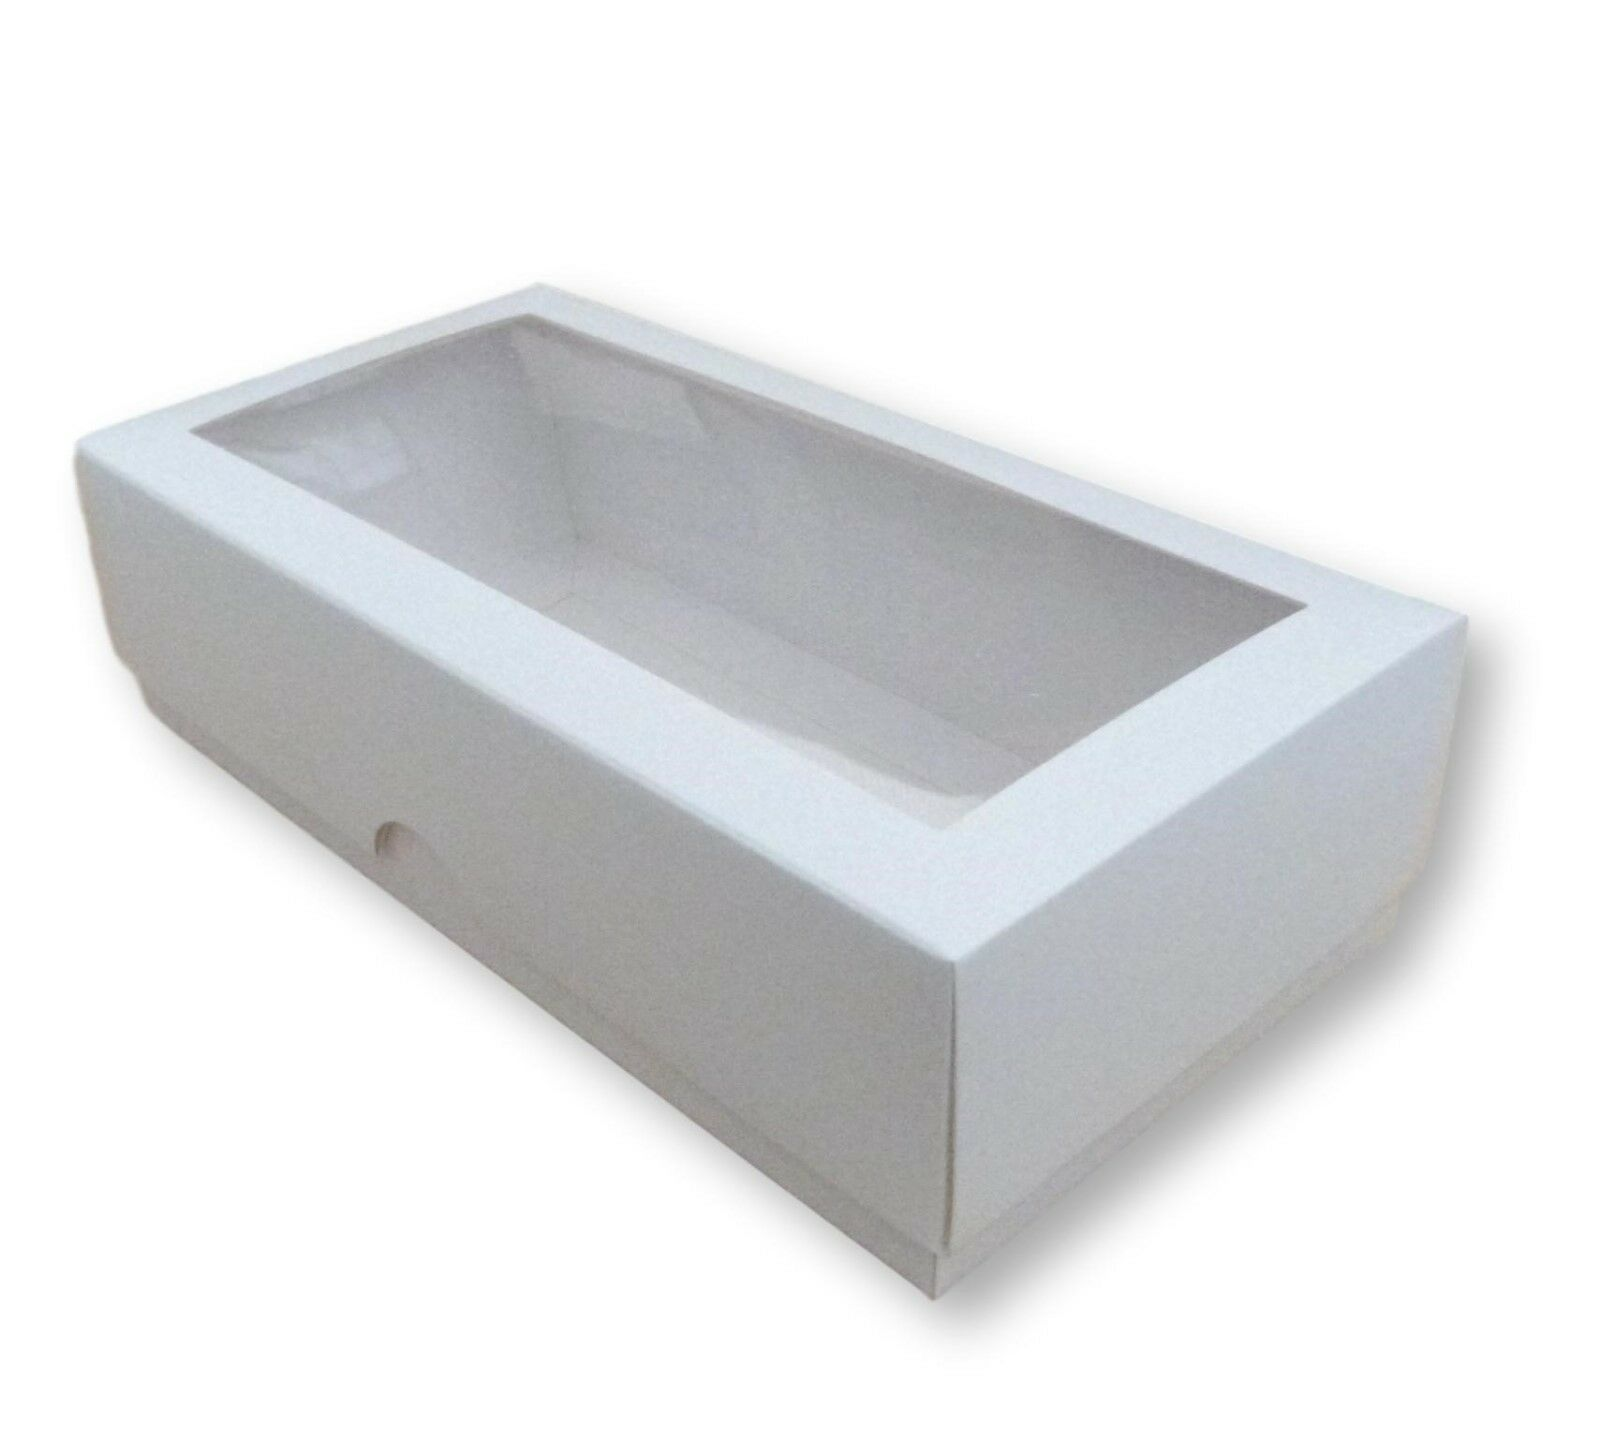 100 Weiß 8 x 4 INCH BOXES WITH WINDOW, GIFTS, CAKES, GARMENTS ETC